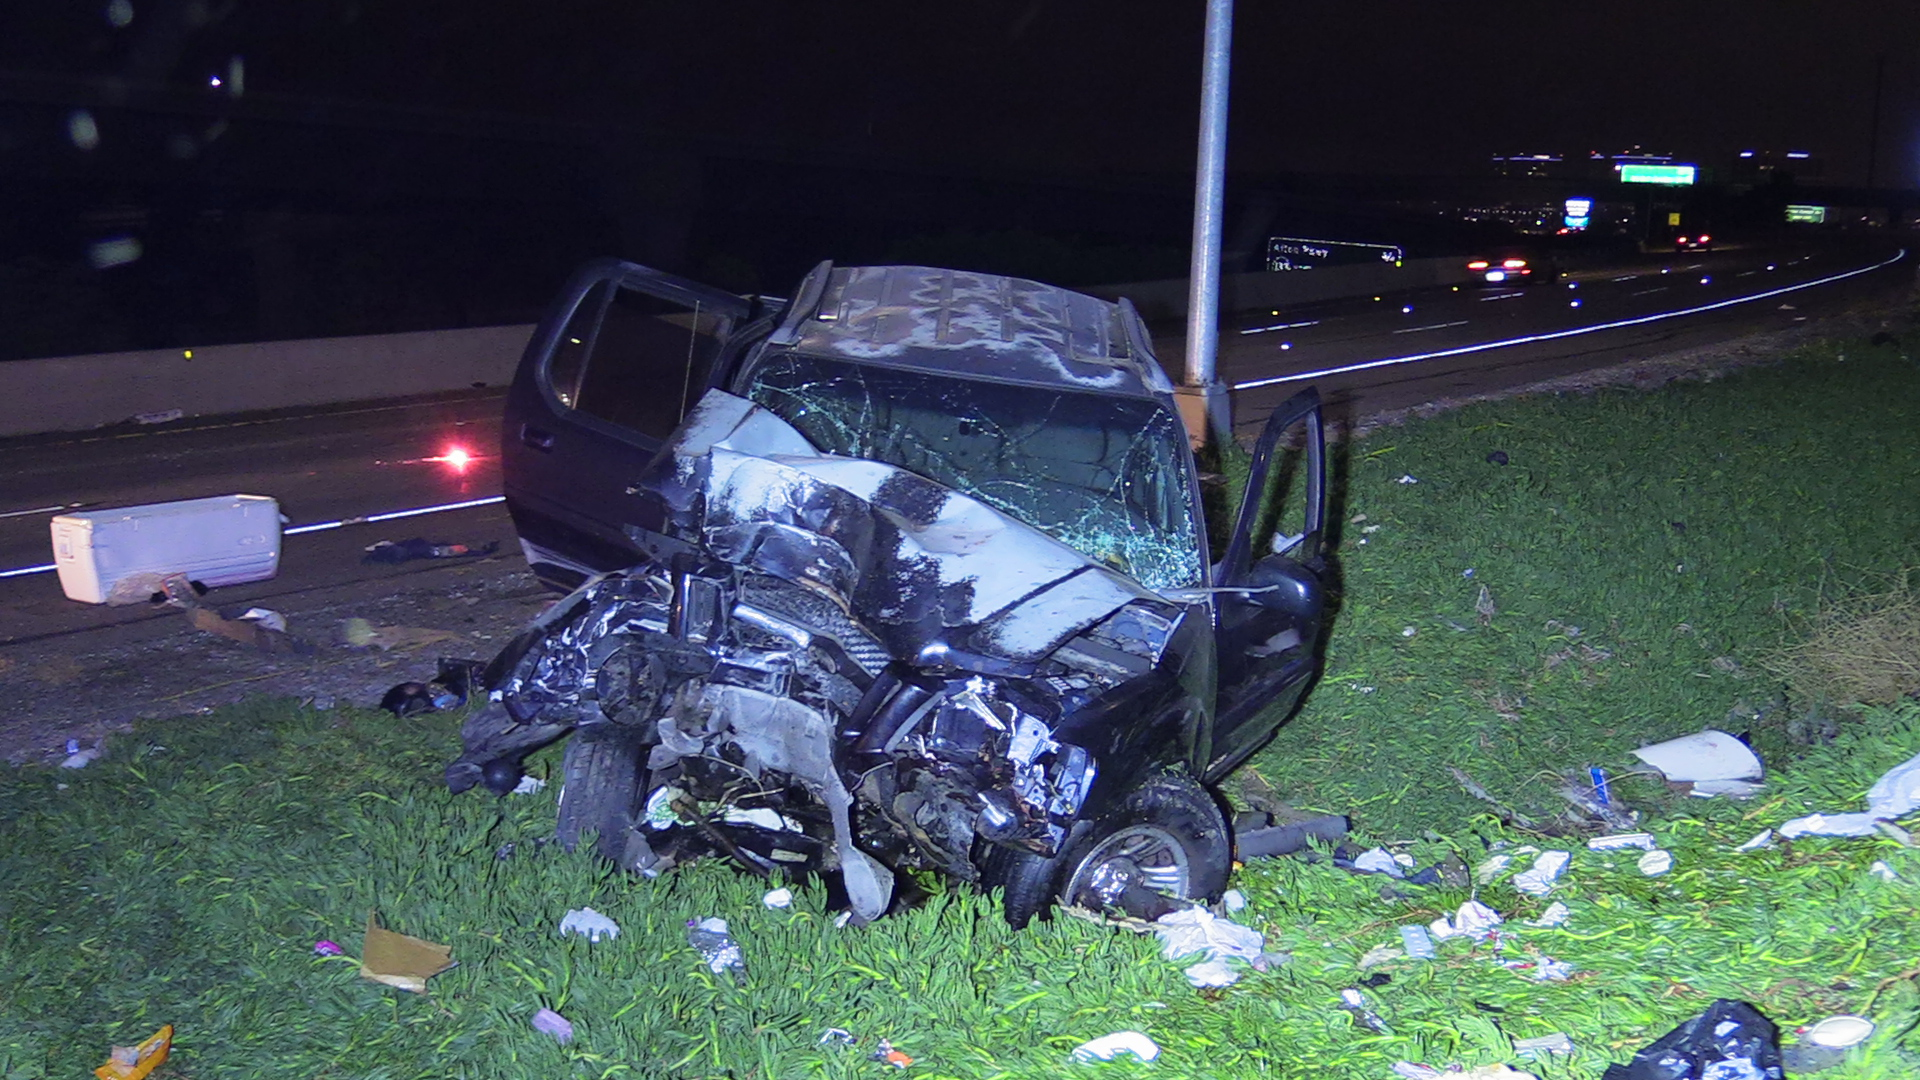 MAN KILLED IN SUSPECTED DUI CRASH ON THE 5 FREEWAY IN IRVINE